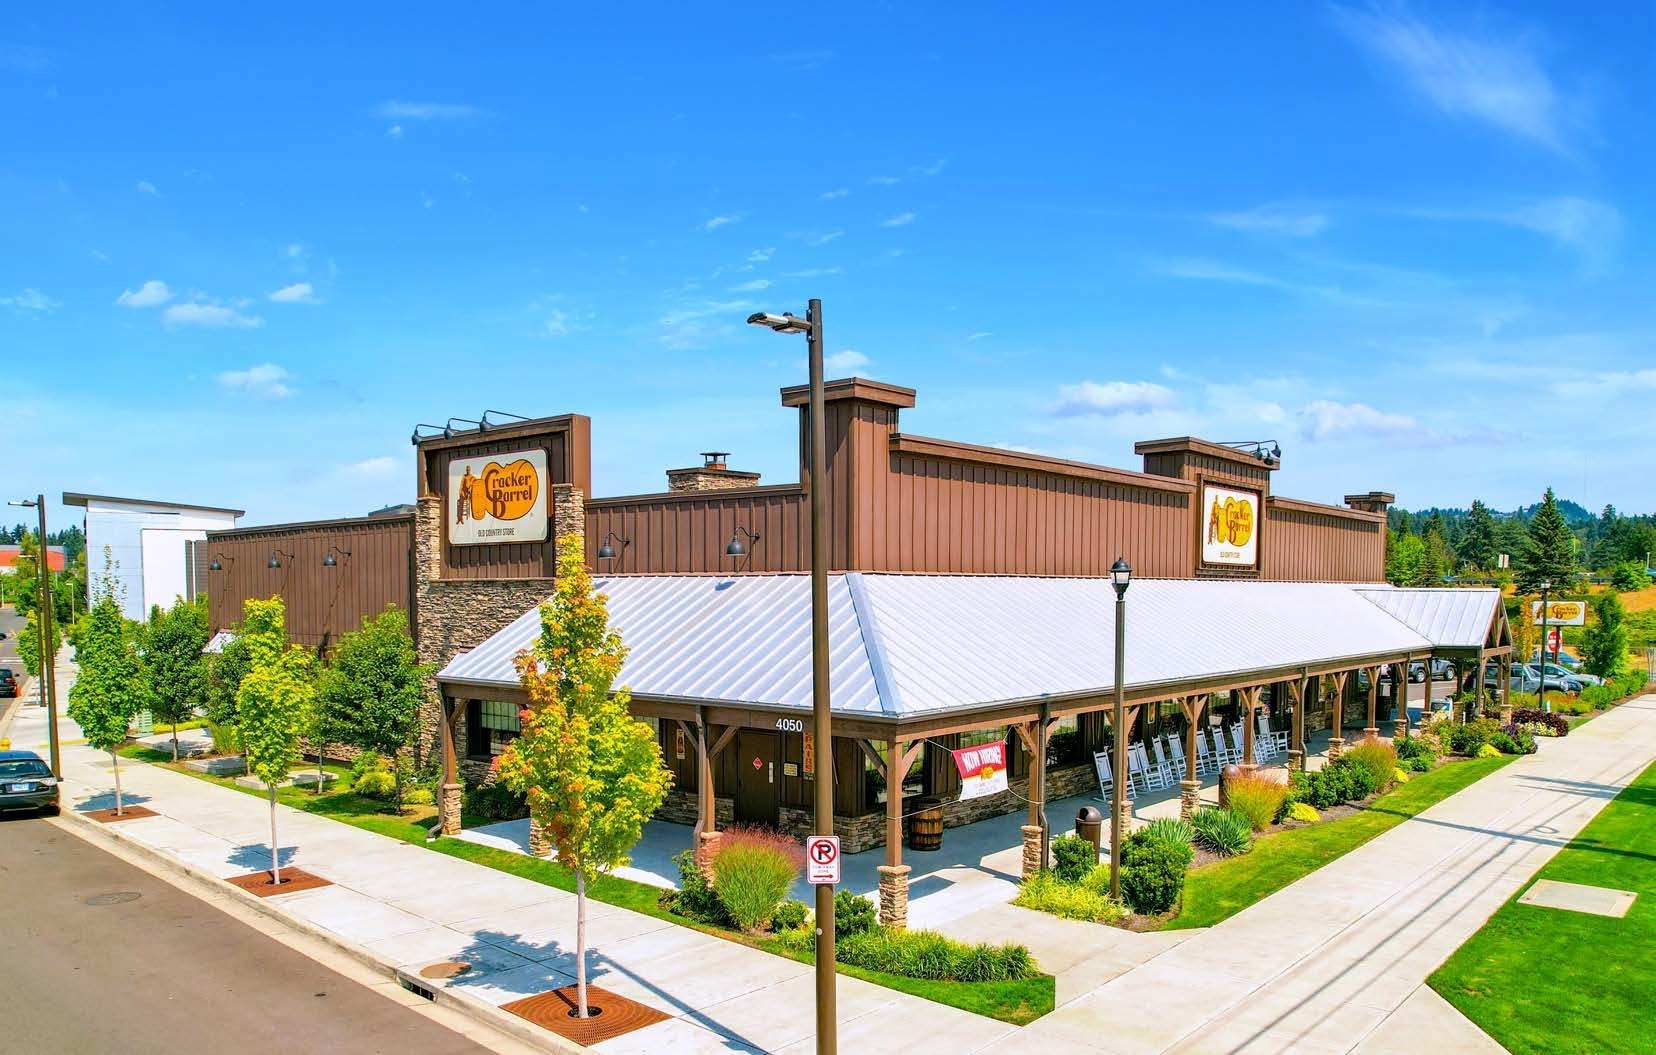 Cracker Barrel's retail sales in its latest quarter increased over 2019 while dining revenue trailed. (CoStar)